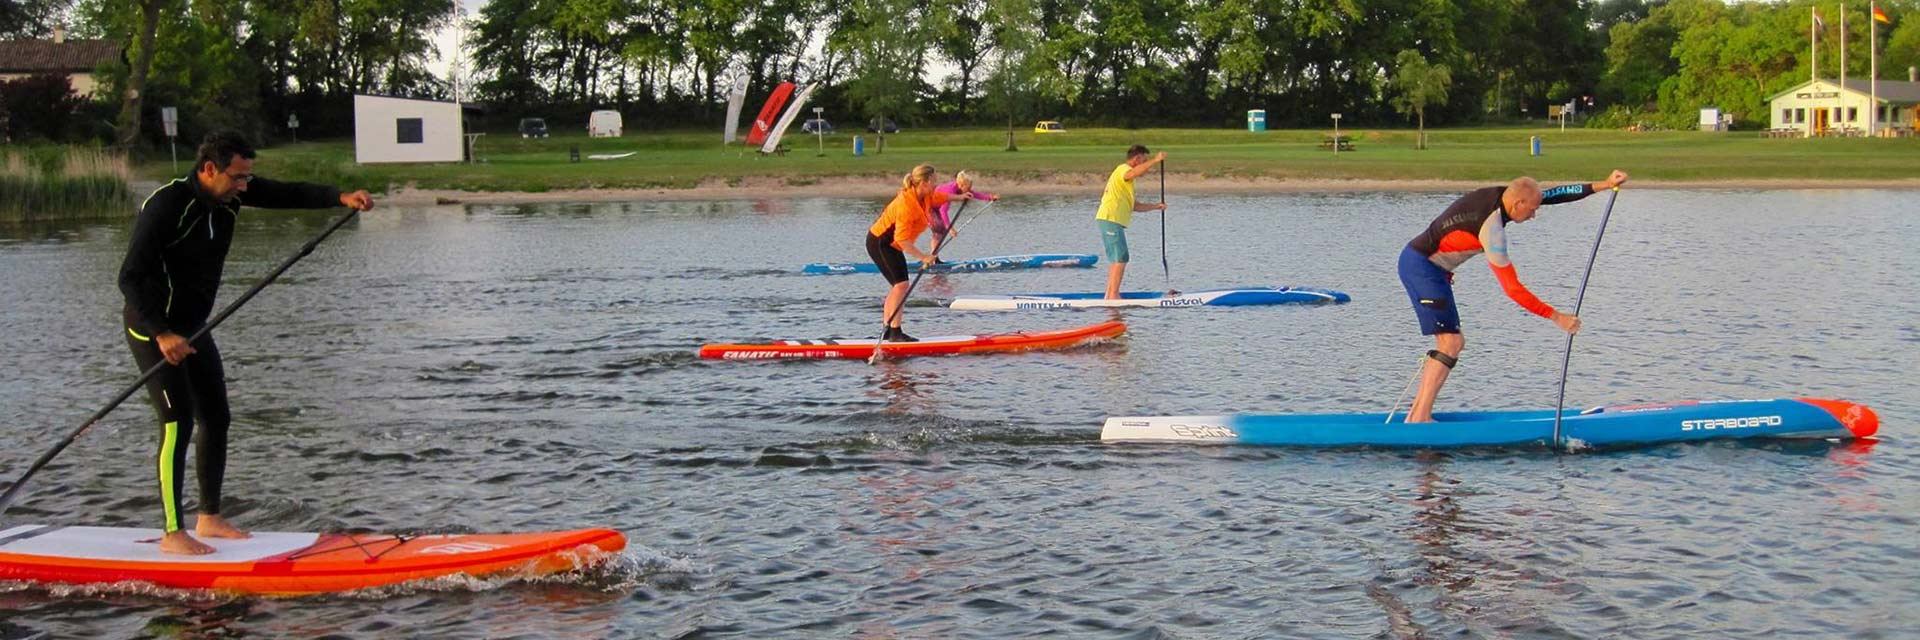 SUP-training-start-techniek